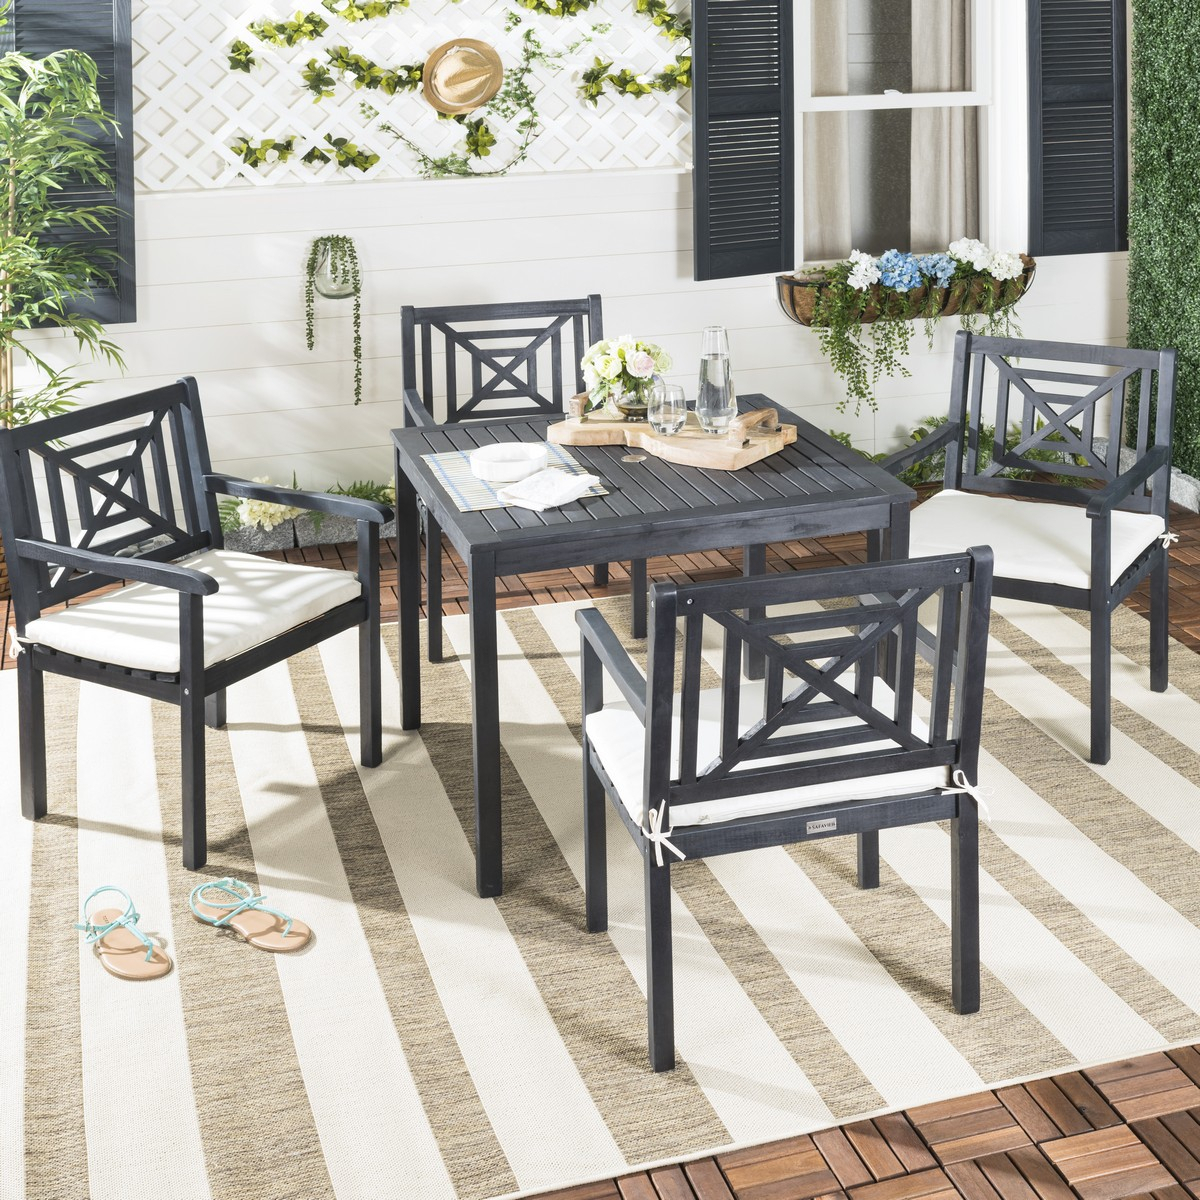 Delmar 5 Piece Dining Sets Pertaining To Well Known Pat6722k Patio Sets – 5 Piece Outdoor Dining Sets – Furniture (View 7 of 20)